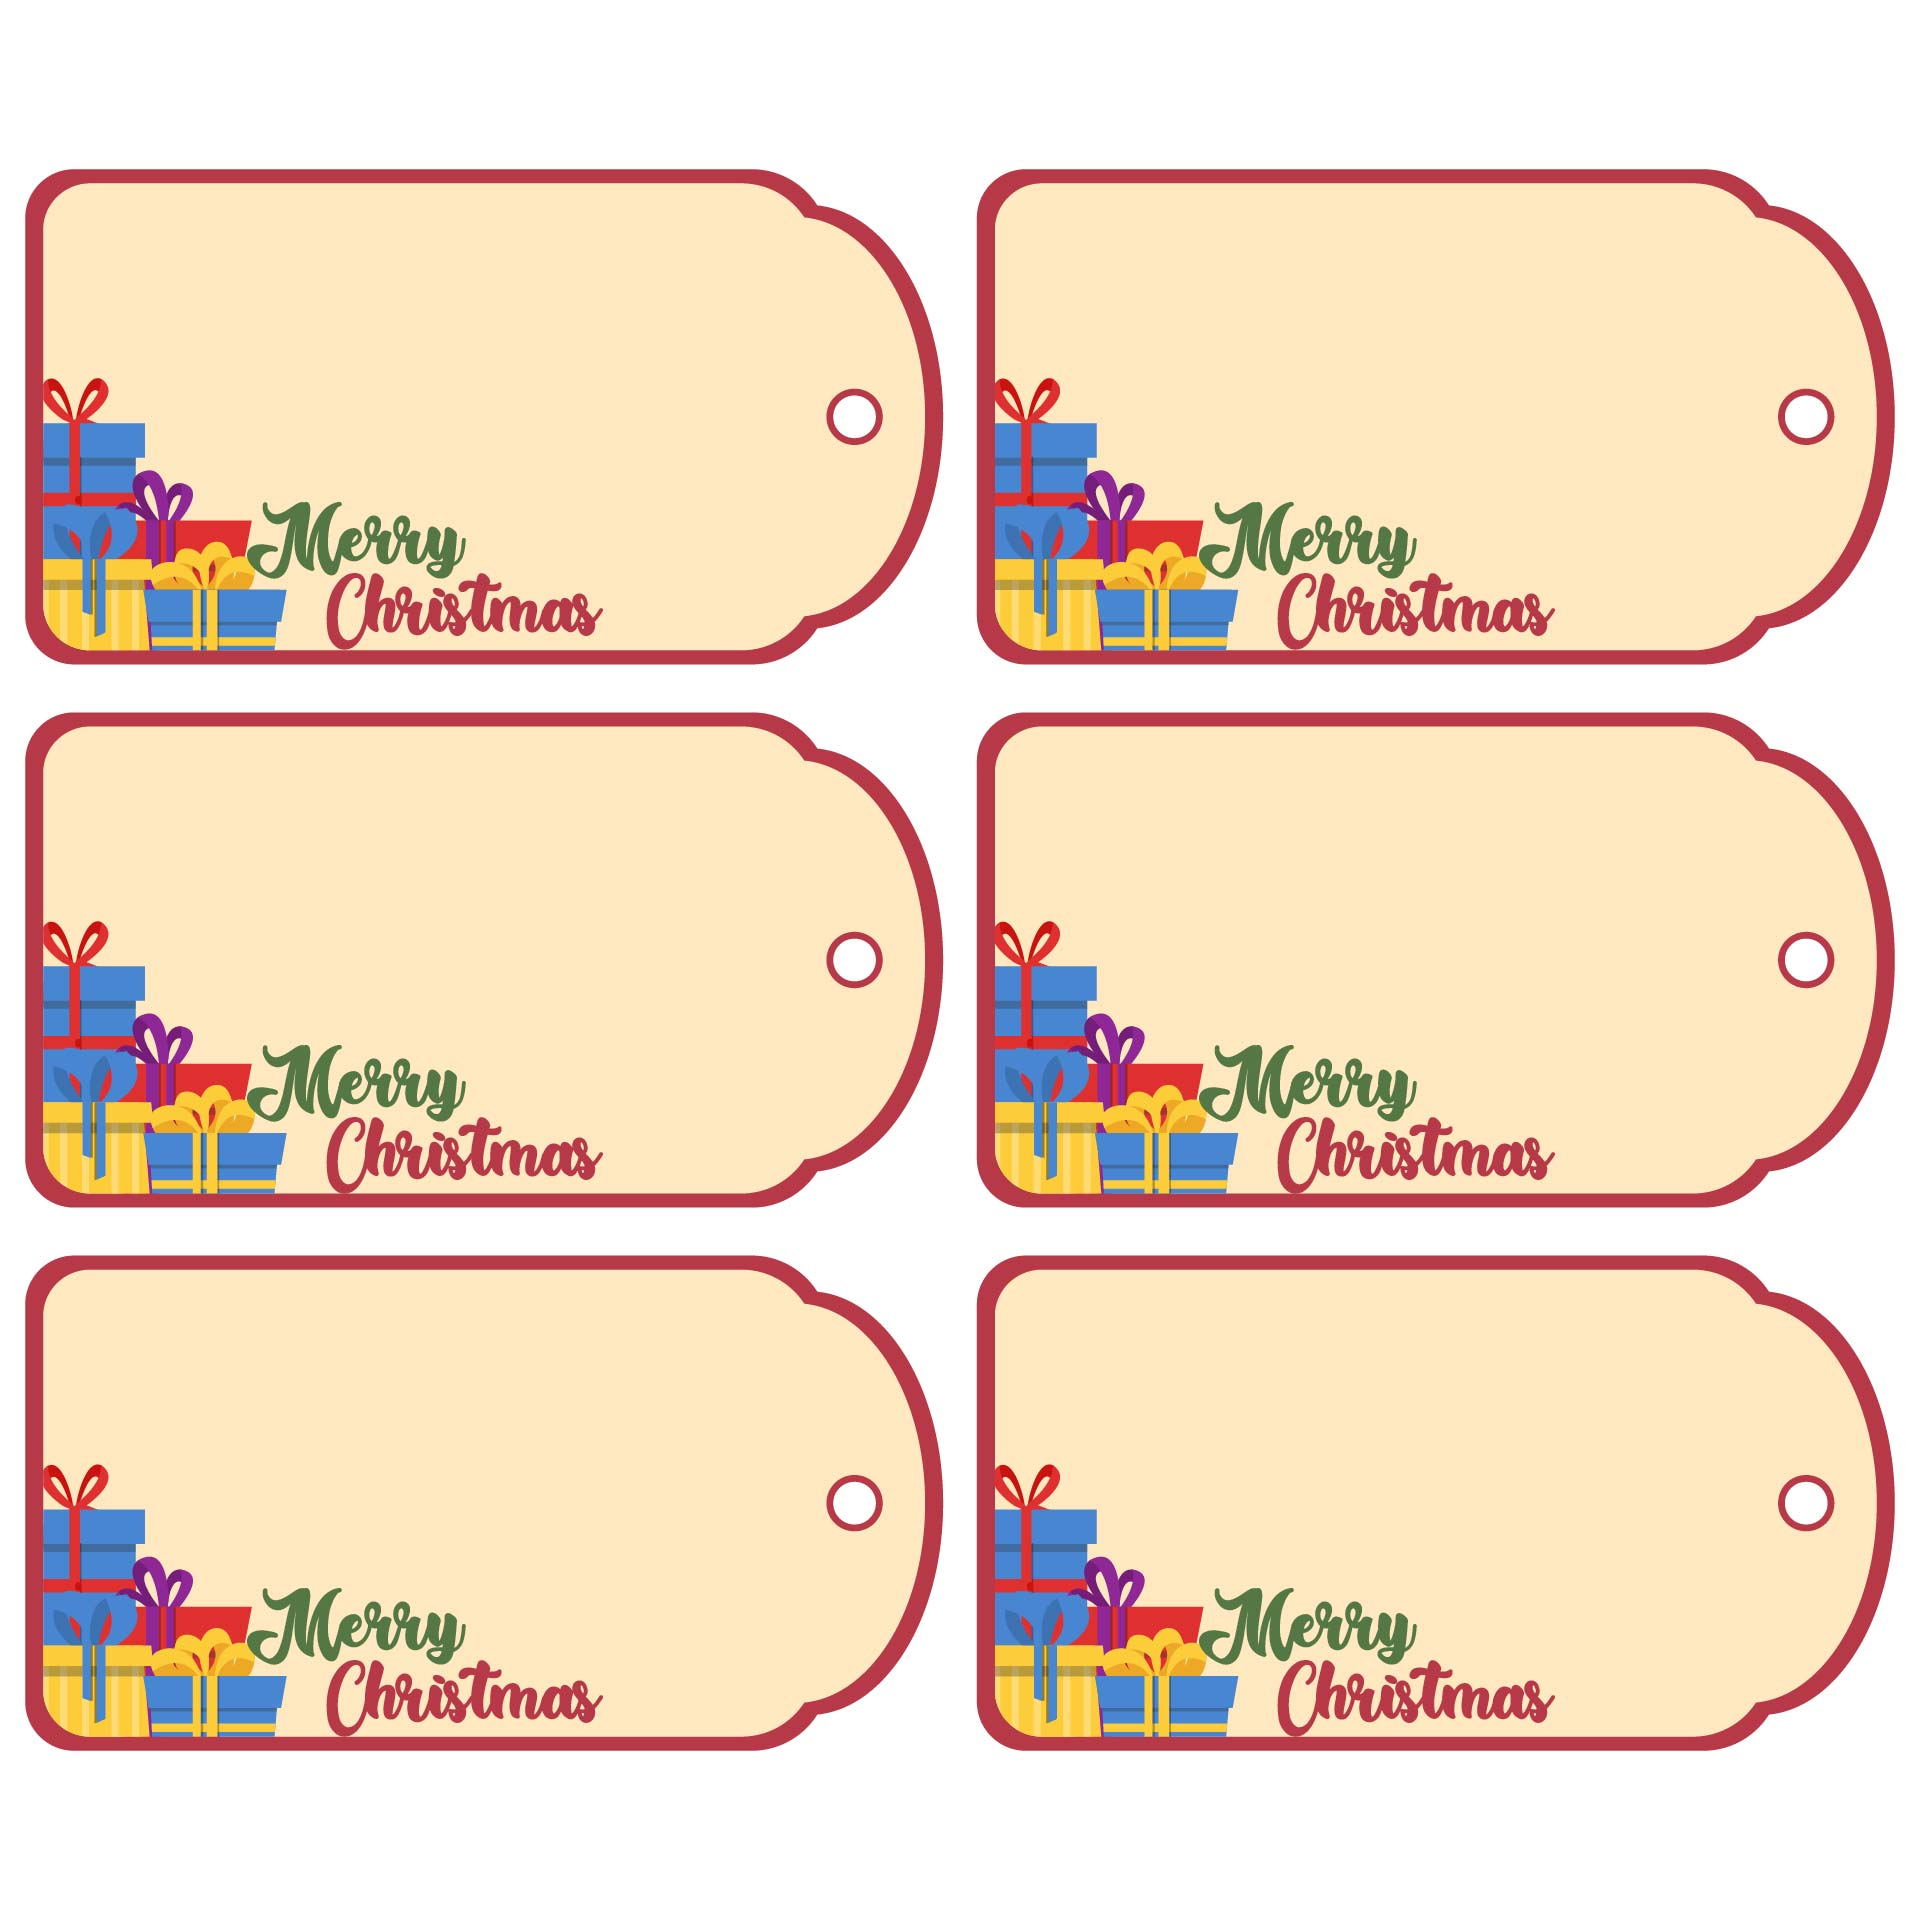 7 Best Images of Blank Printable Christmas Tags - Blank ...